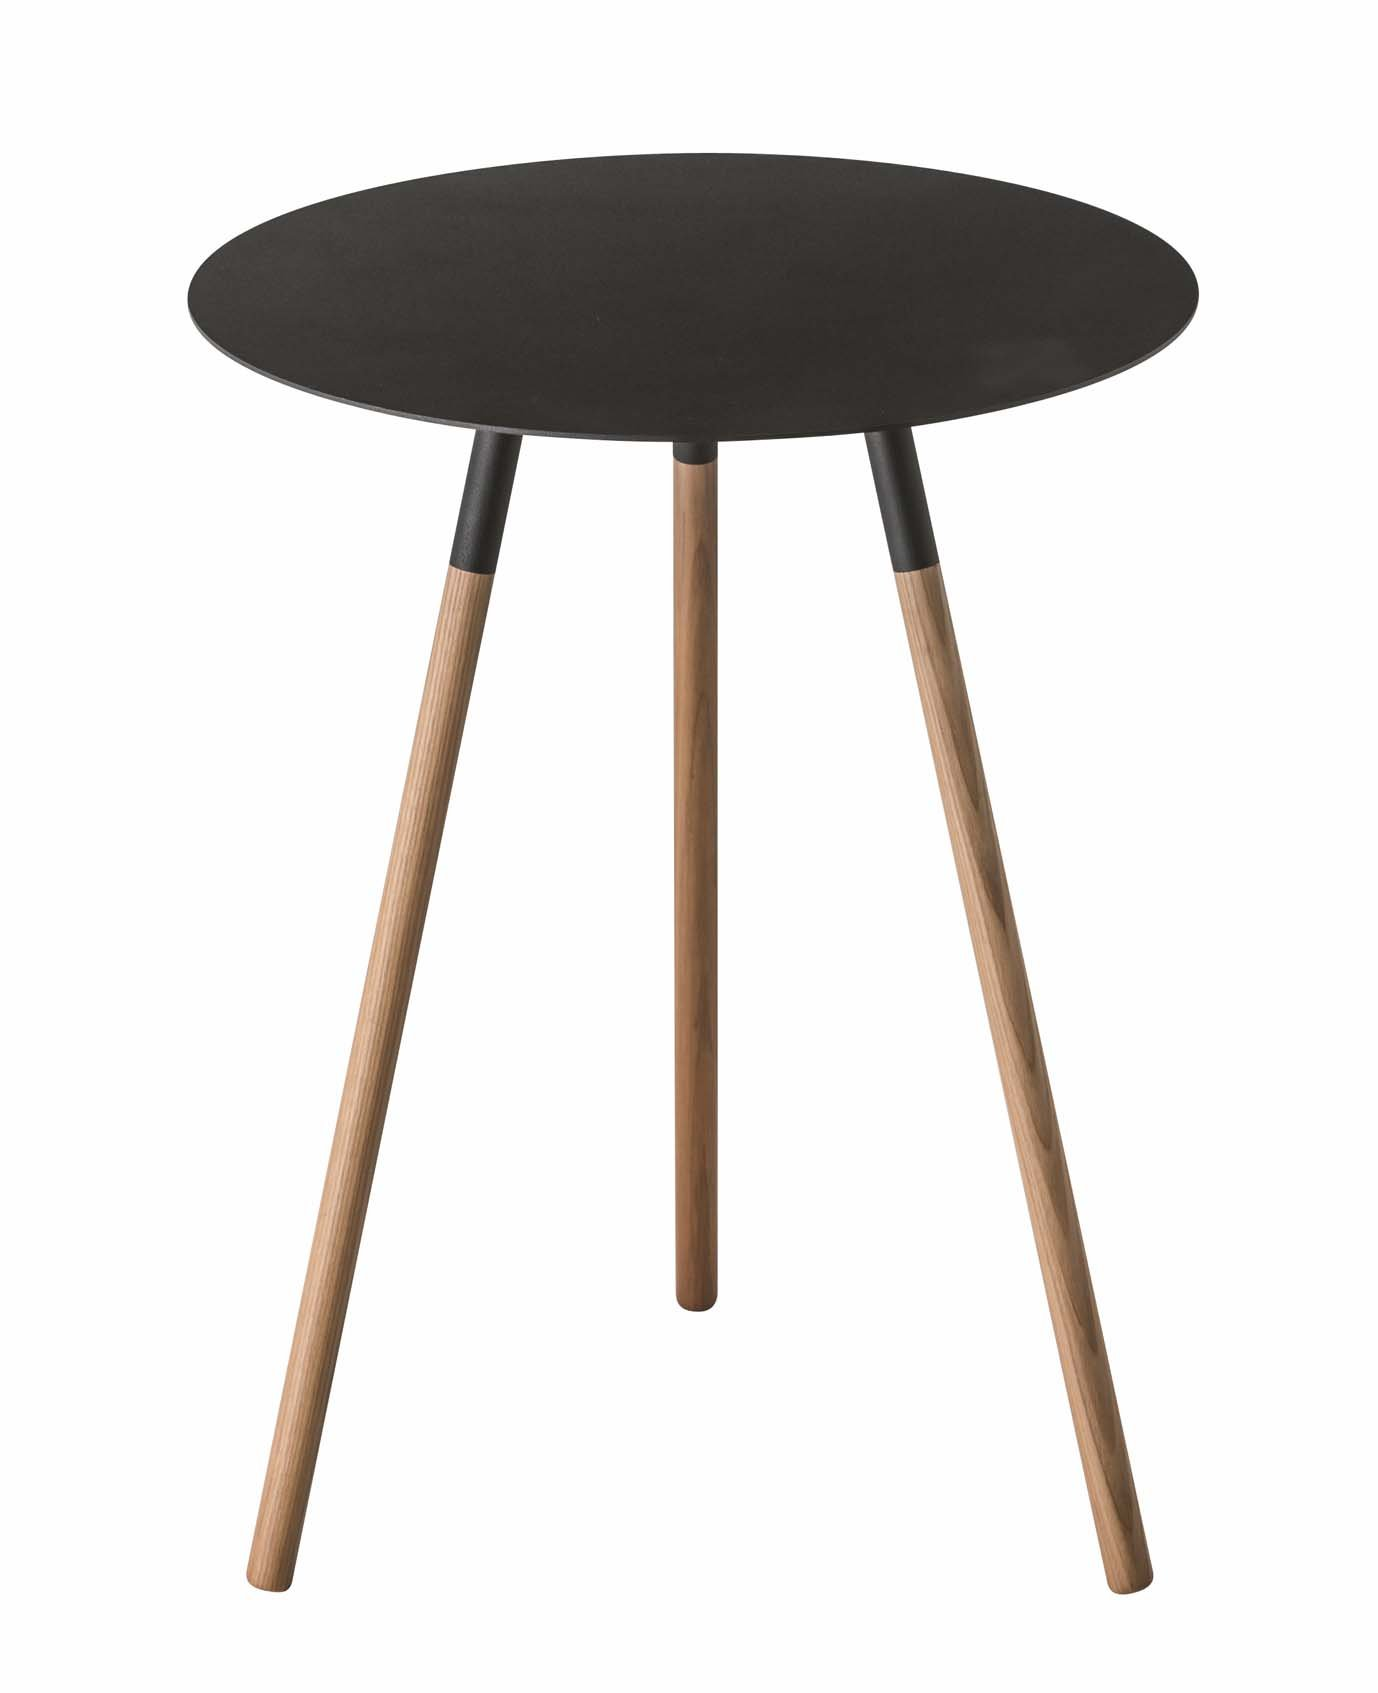 Red Co. Wood & Steel Mid-Century Modern Round Side Table in Black Finish by Red Co.